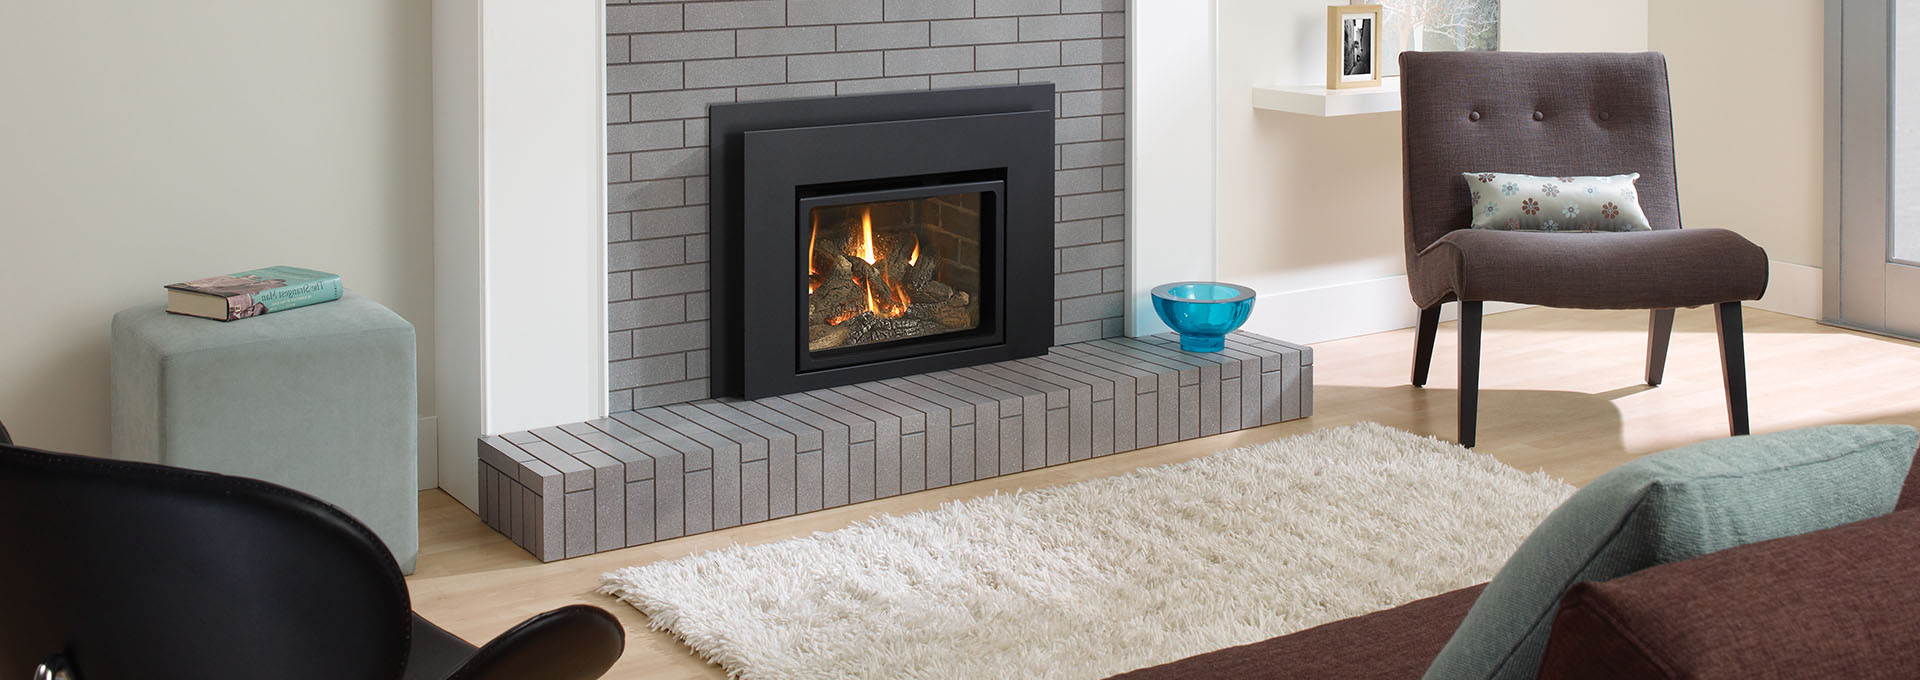 L234 Small Gas Fireplace Insert Regency